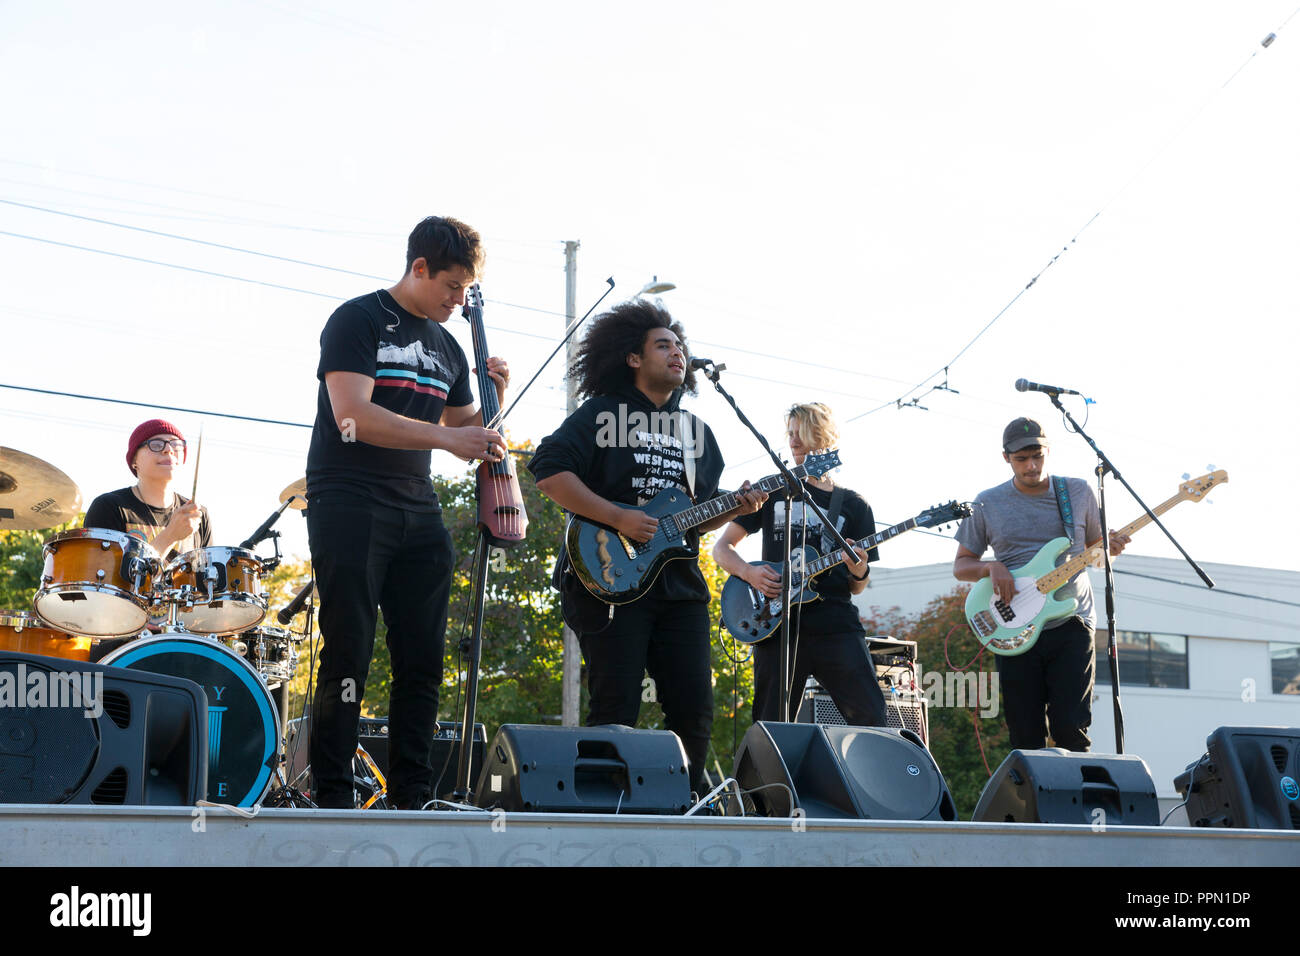 Seattle, Washington, USA. 25th Sep 2018. Gypsy Temple performs at the Washington State Labor Council during of National Voter Registration Day. The alternative rock band launched the Make Your Voice Heard Loud tour to spur voter registration and turnout. National Voter Registration Day is held annually to ensure that everyone eligible has the opportunity to vote. Upwards of 10,000 volunteers were mobilized in 2016 registering over 750,000 voters across all 50 states. Credit: Paul Christian Gordon/Alamy Live News - Stock Image